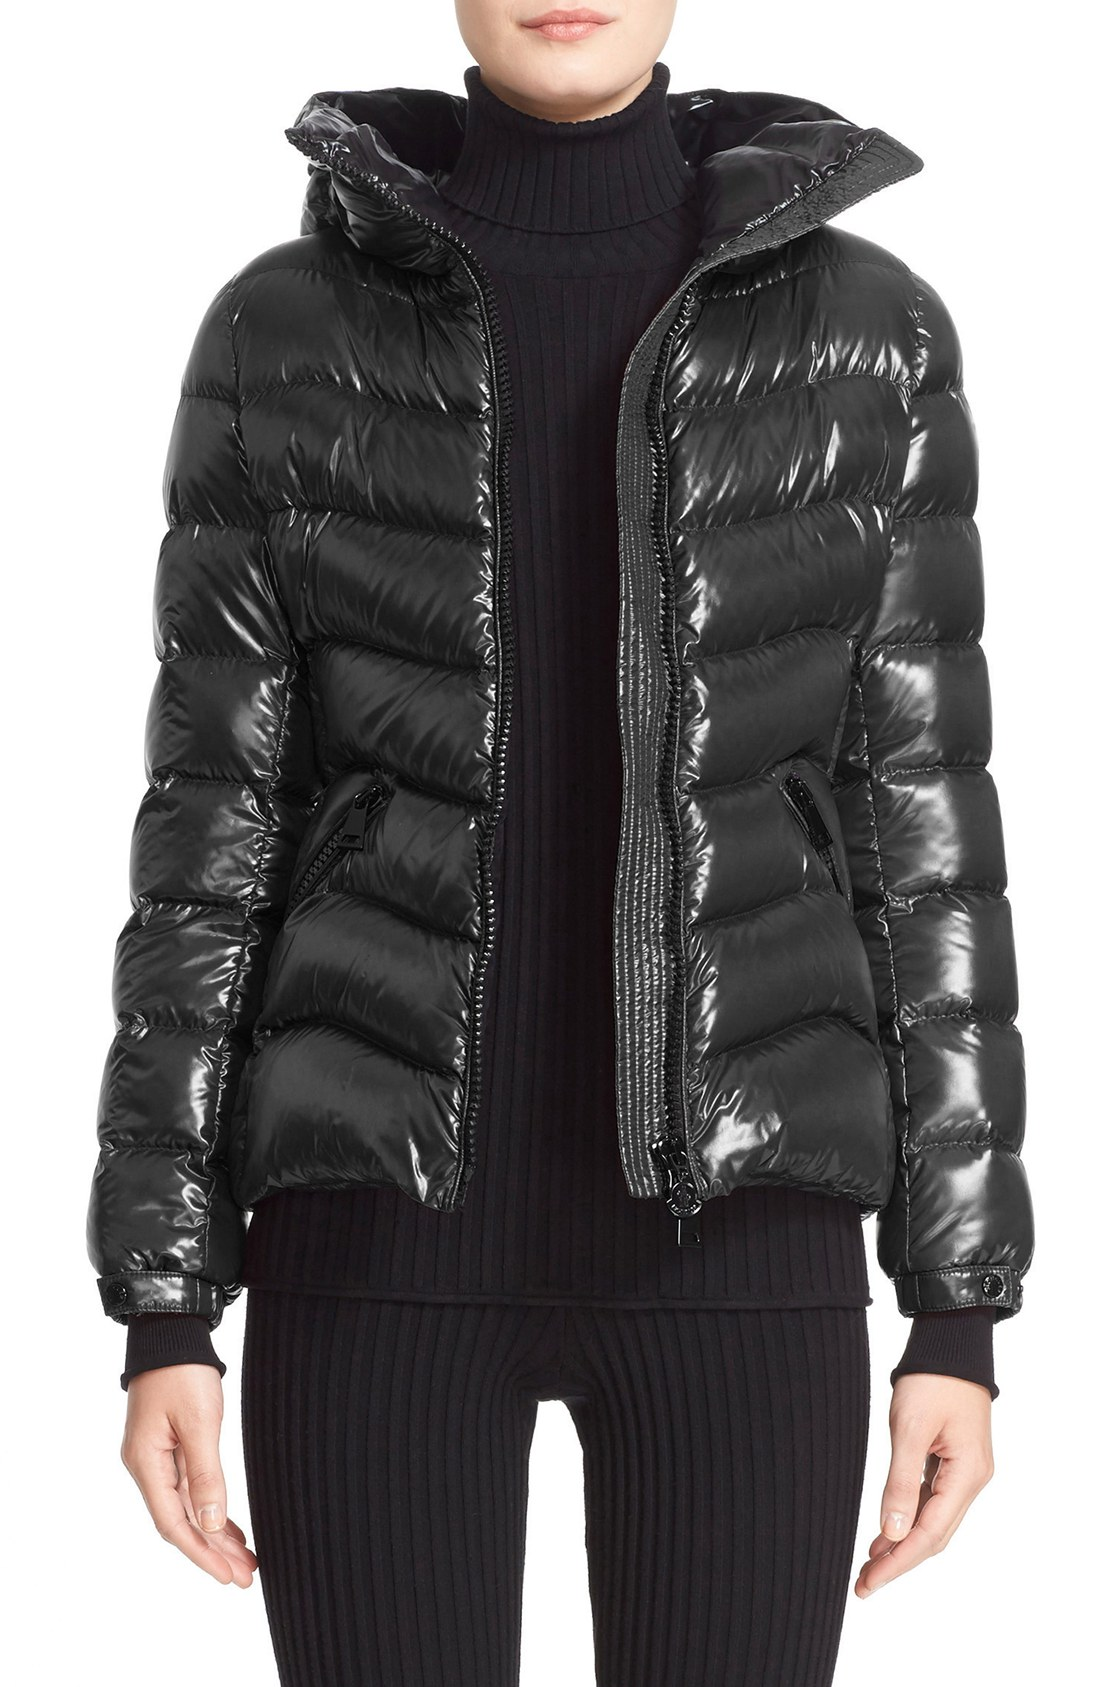 moncler anthia water resistant shiny nylon hooded down puffer jacket |  nordstrom DTDKATW